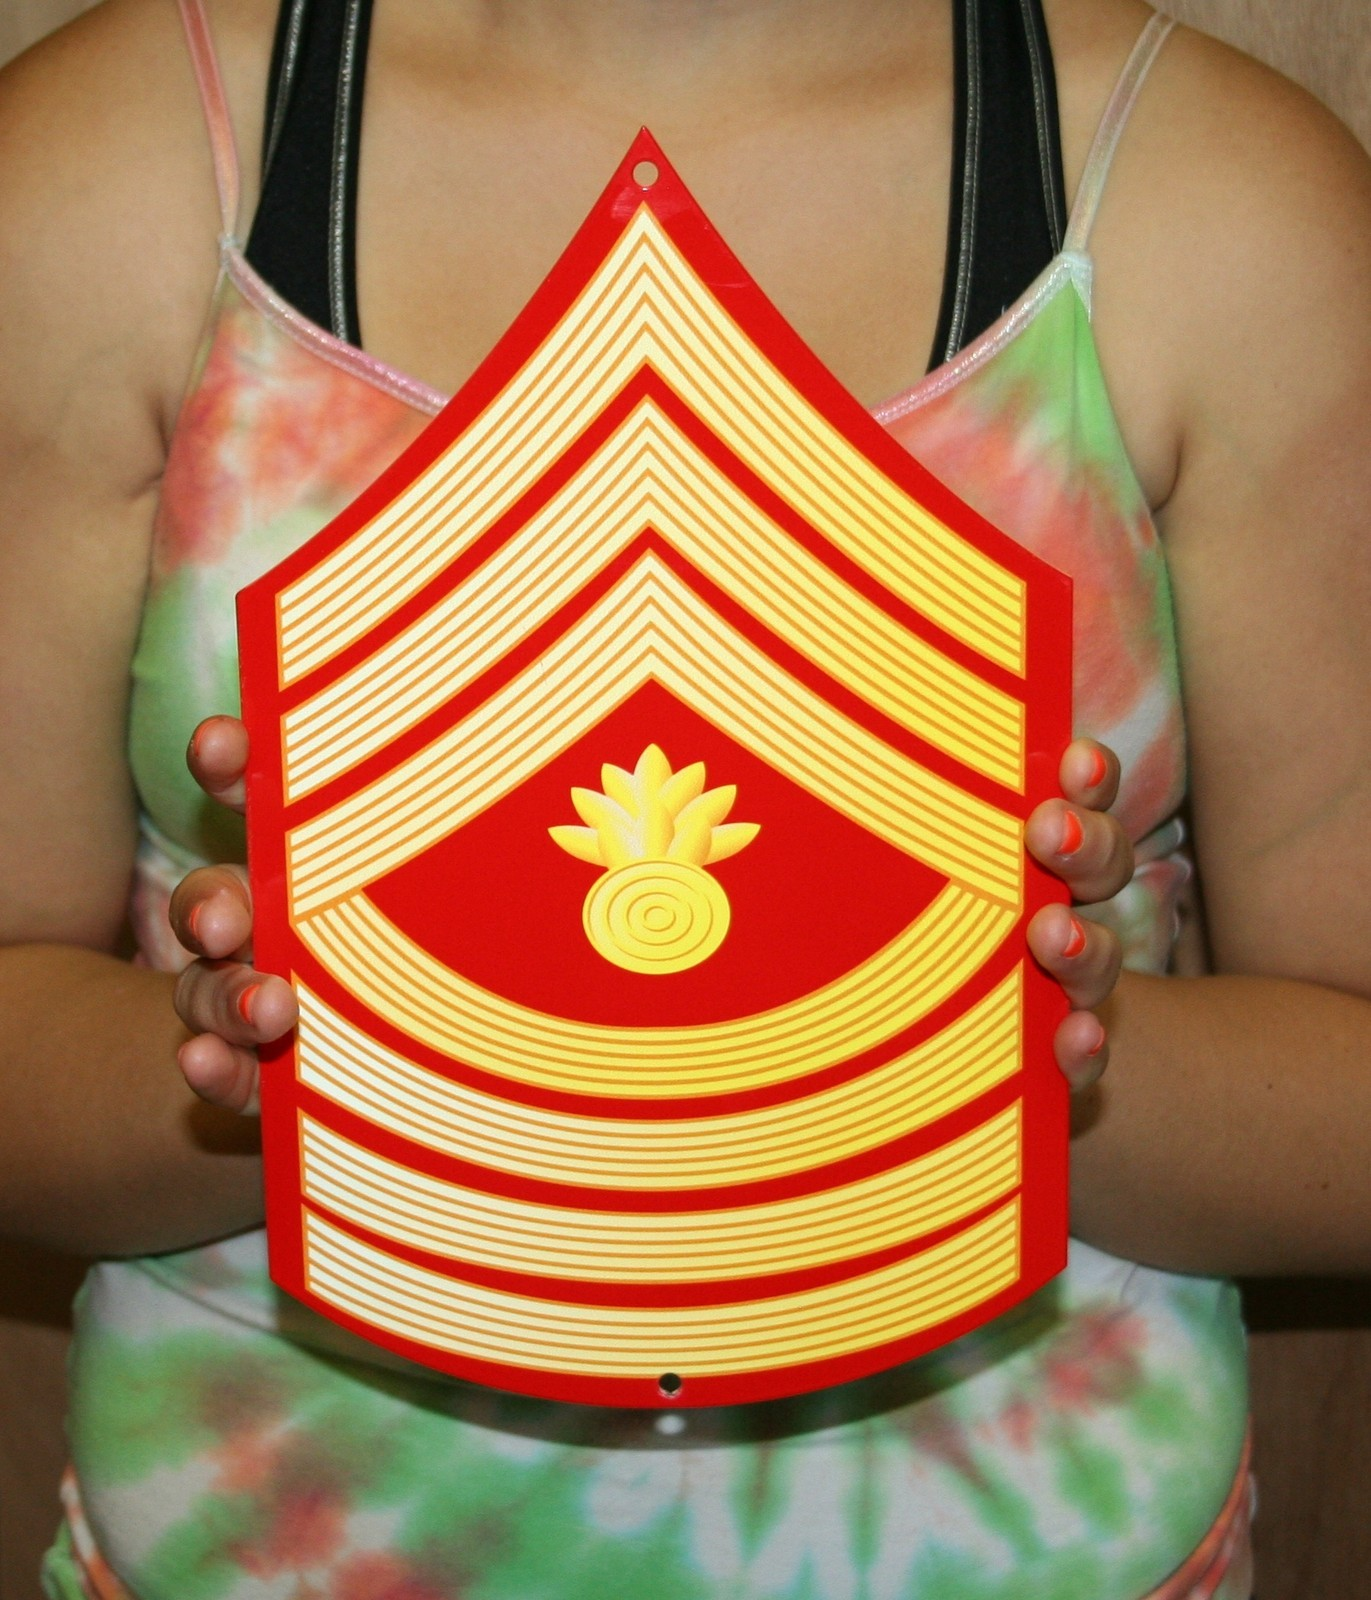 USMC E9 Master Gunnery Sgt rank Red & Gold metal sign - Click Image to Close